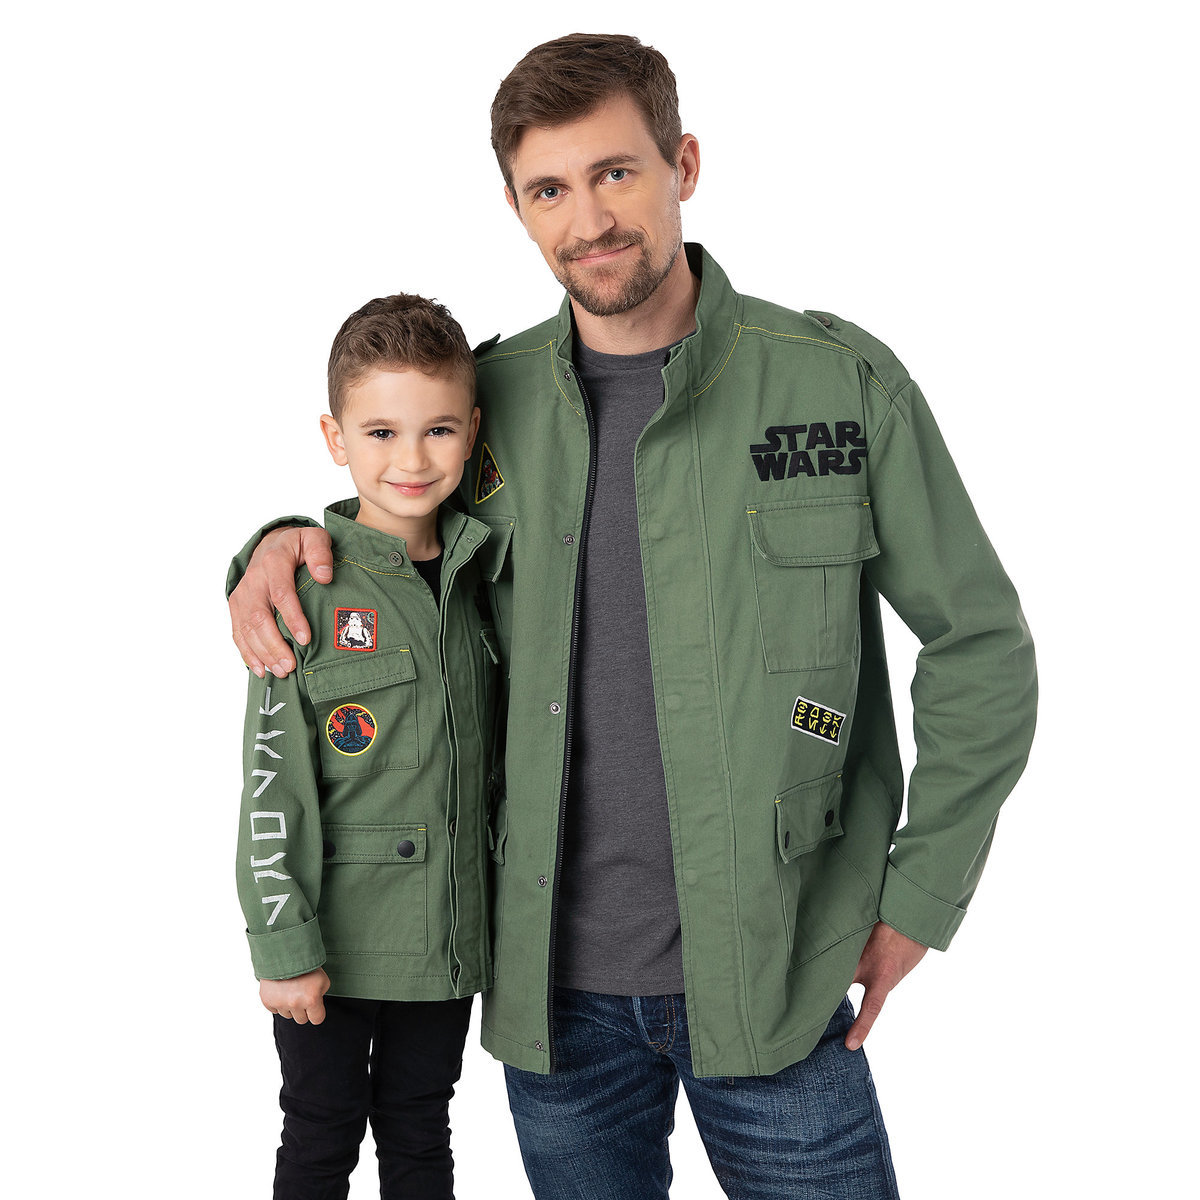 535afe0e12d Product Image of Boba Fett Military Jacket for Adults - Star Wars # 2